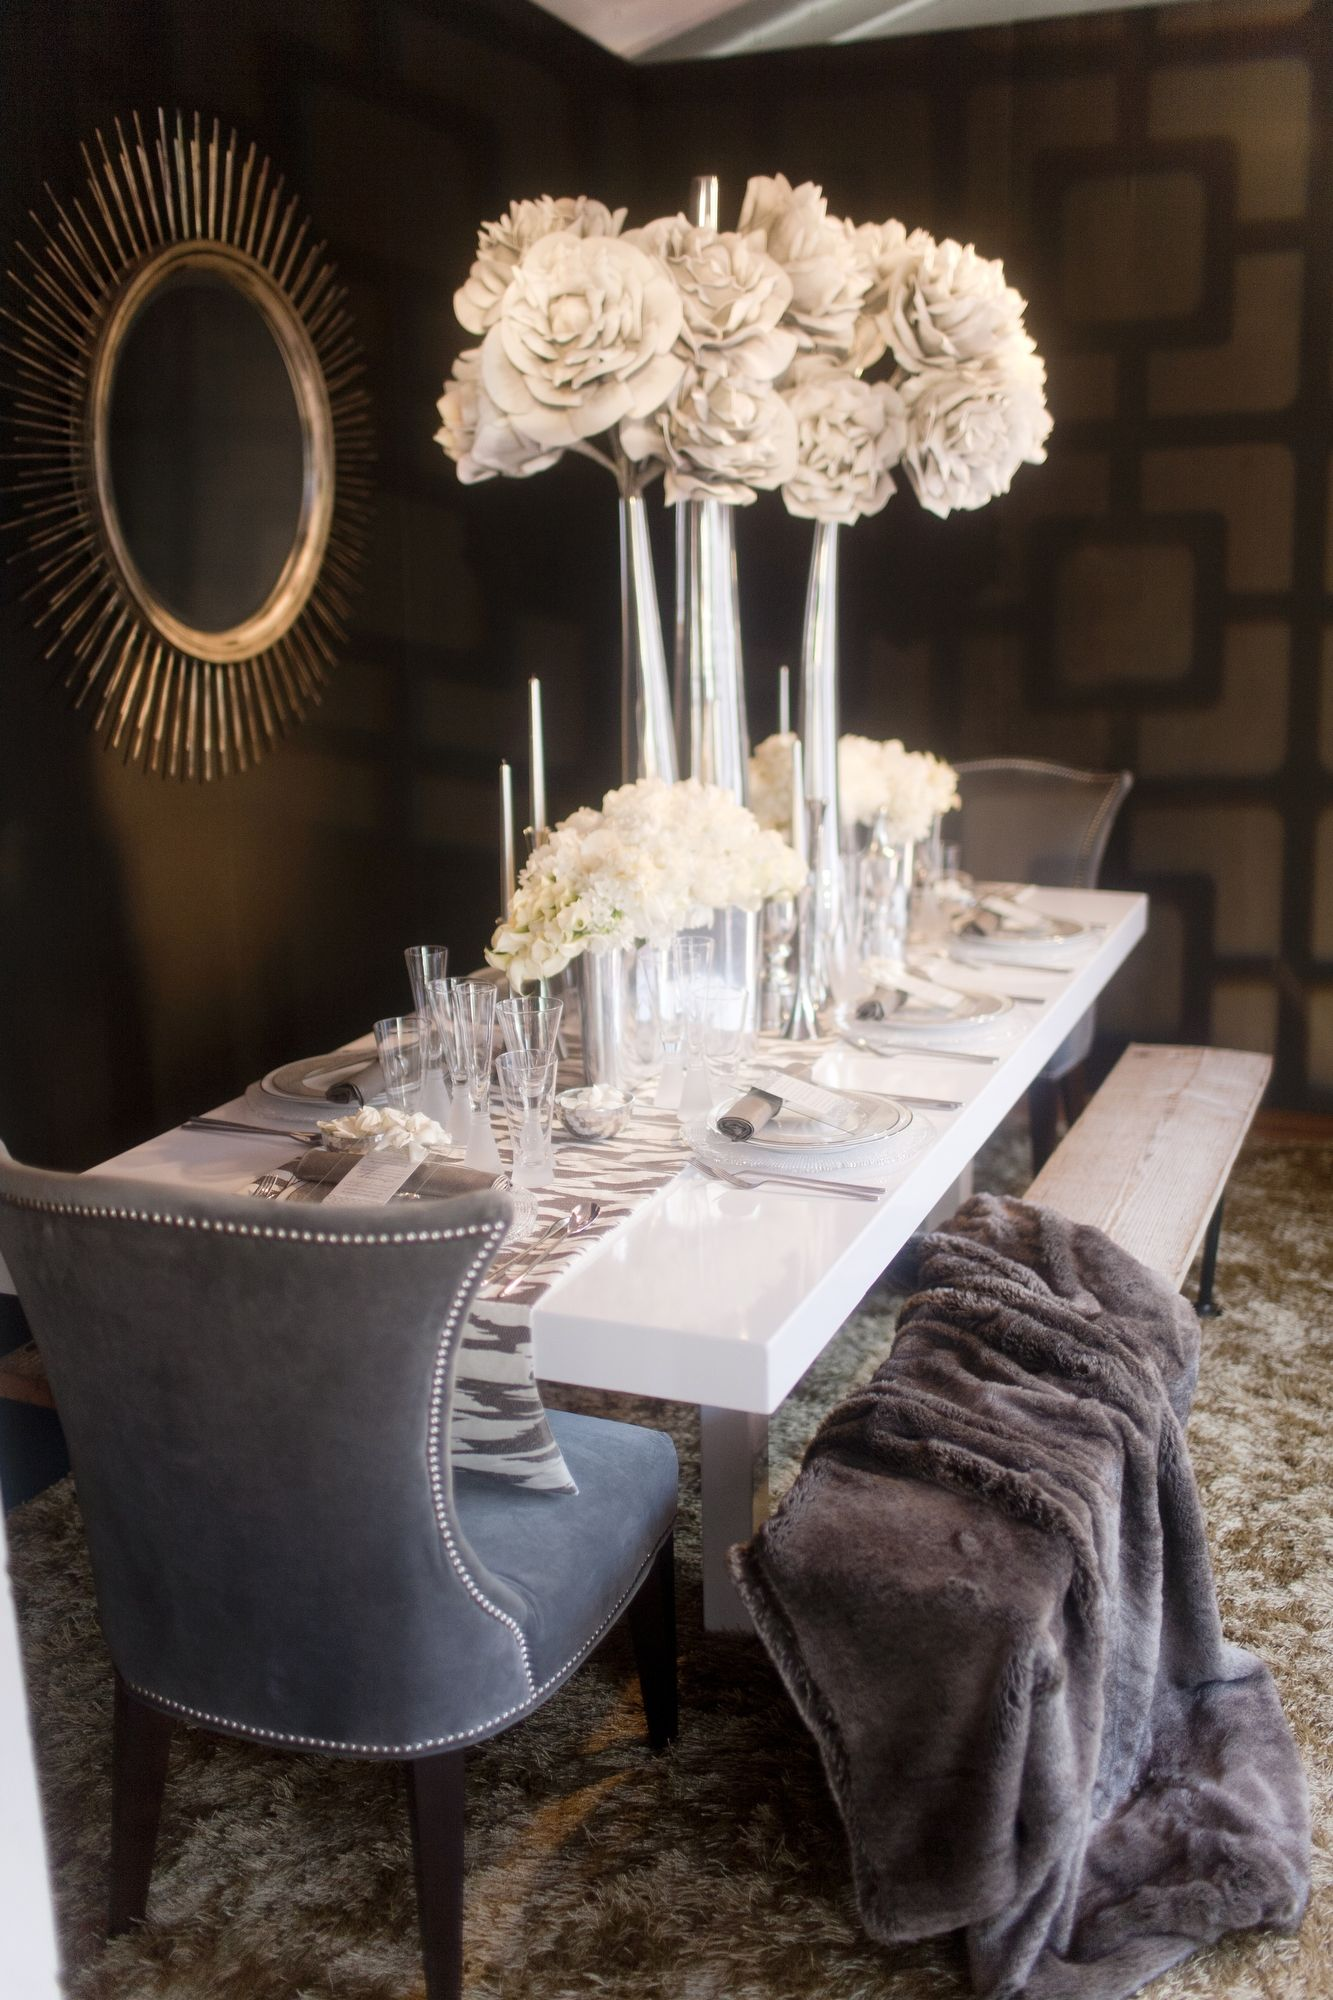 10 Chic Ideas for Winter Party Décor